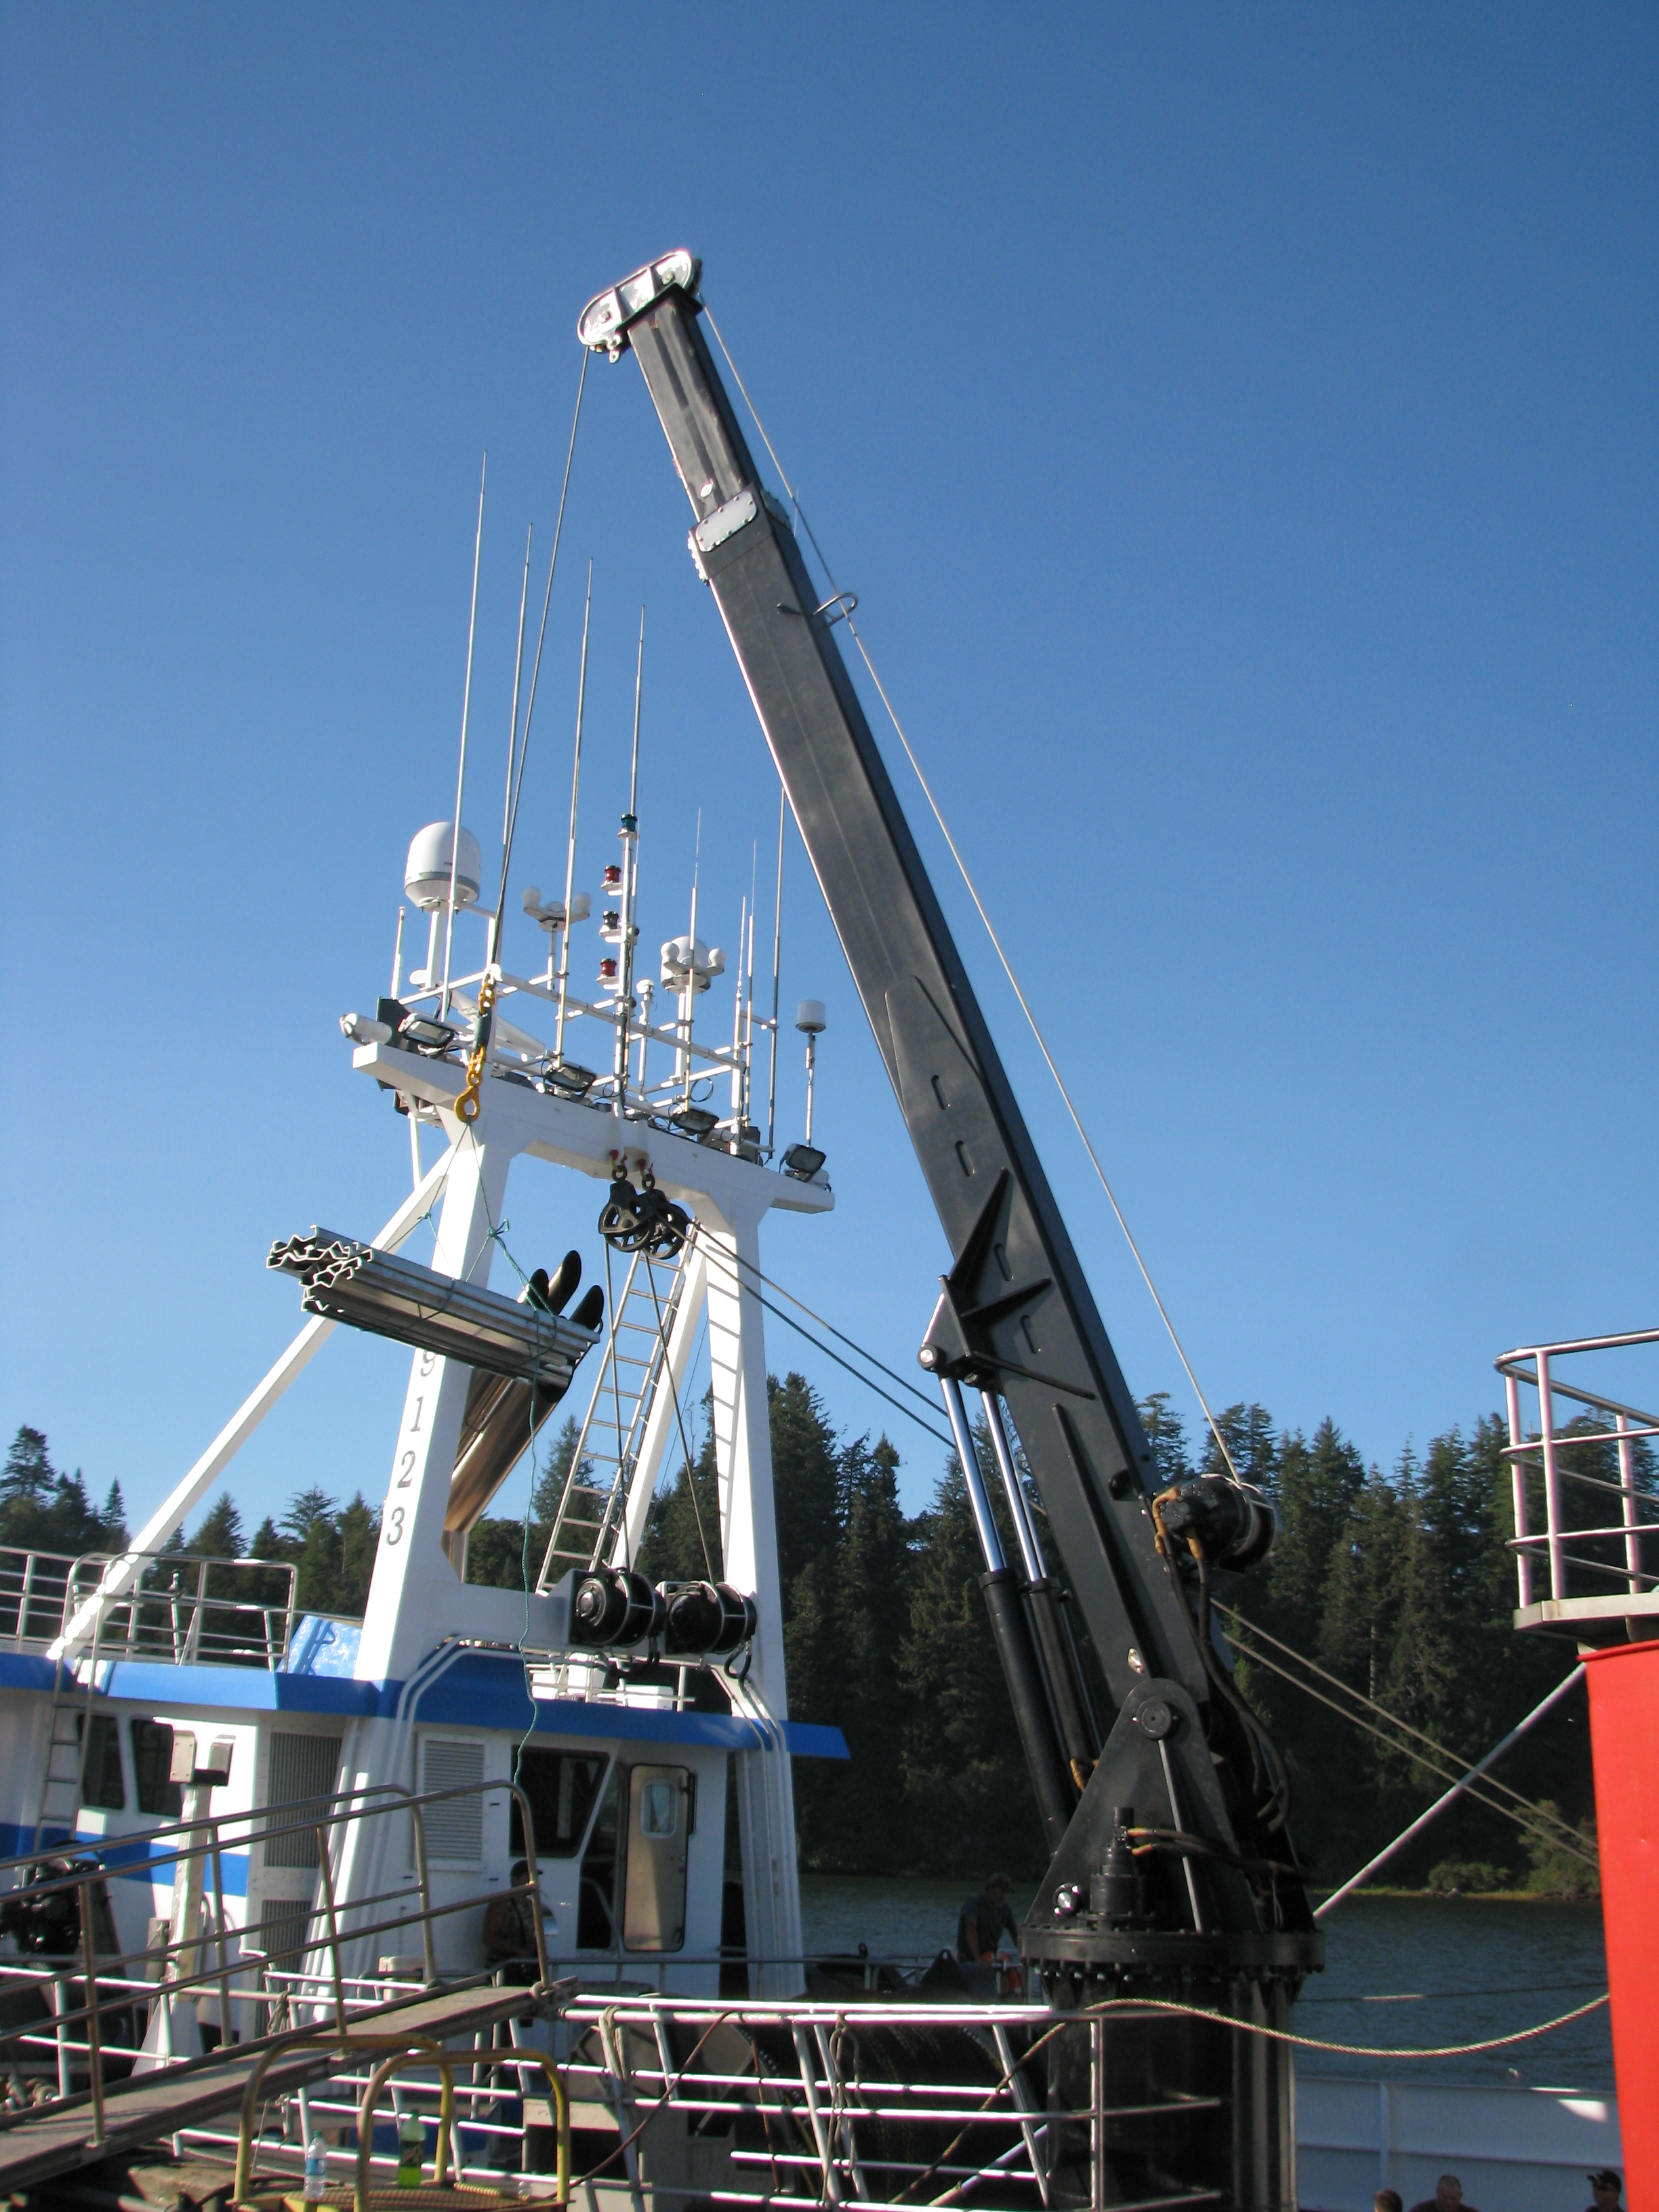 40-FOOT TELESCOPING BOOM CRANE